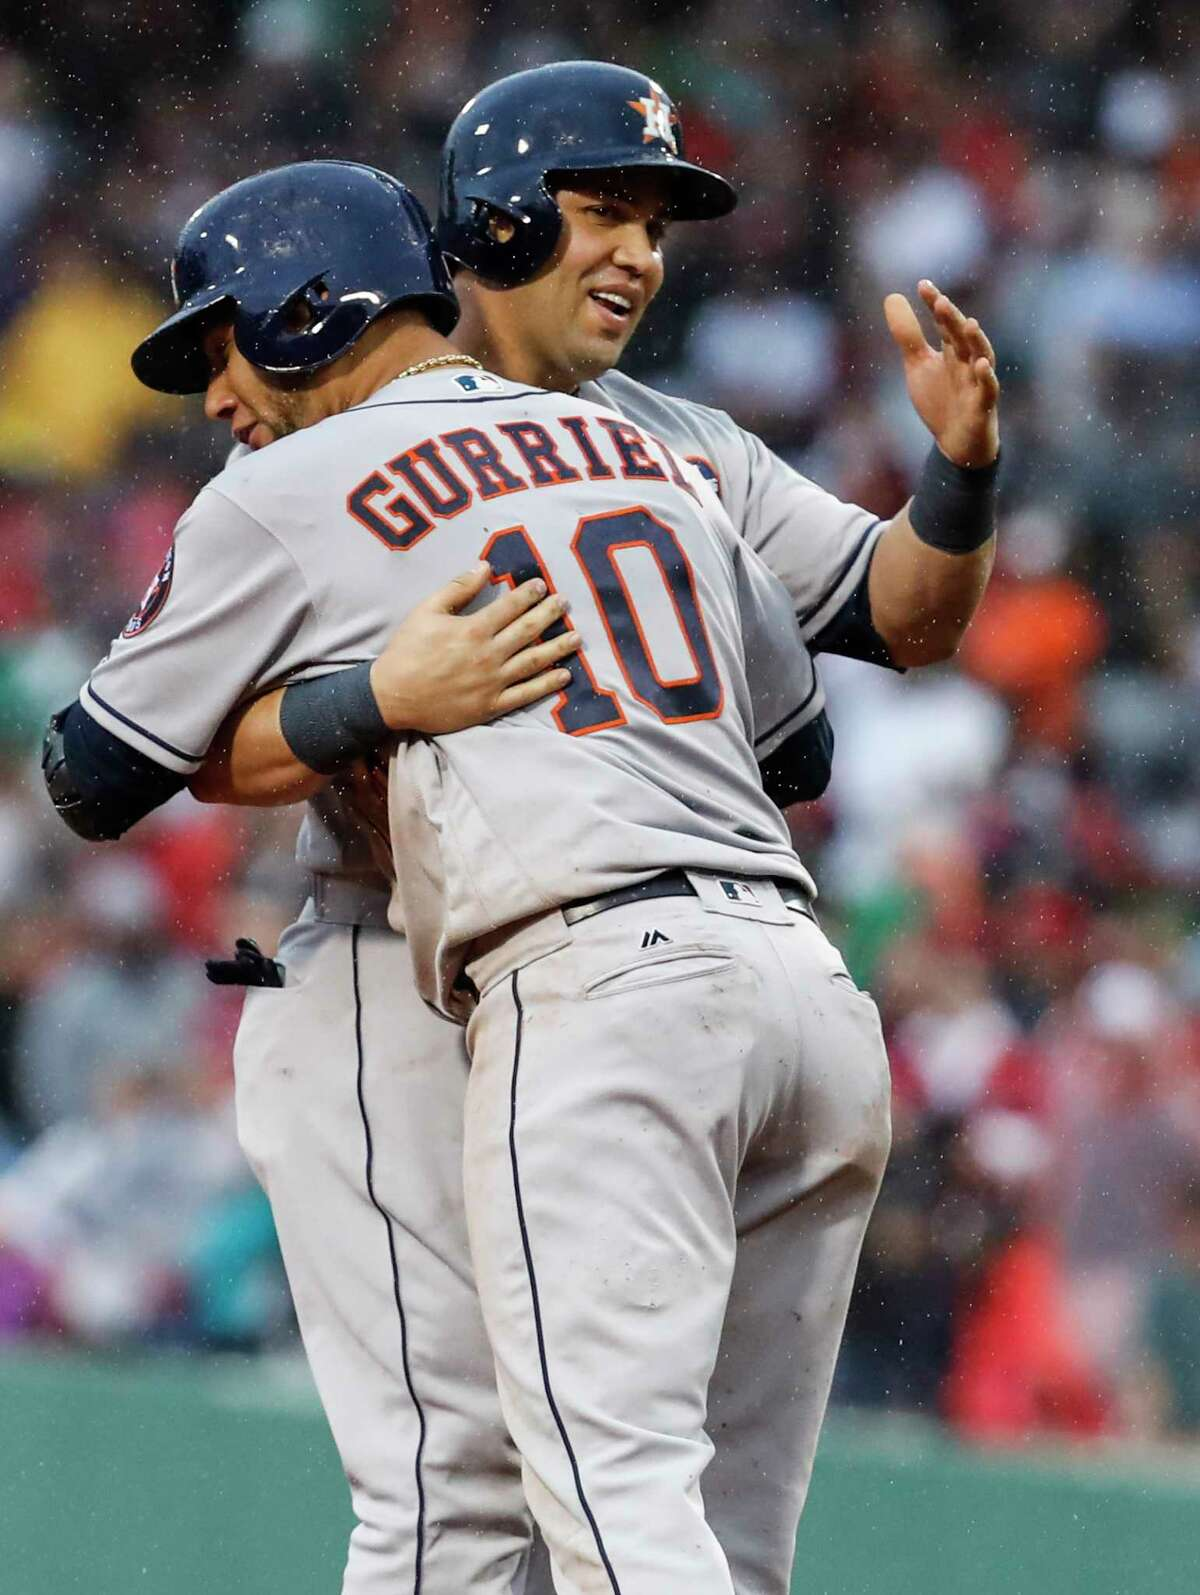 The Astros' Yuli Gurriel shows an affection for insurance runs after pinch hitter Carlos Beltran's ninth-inning RBI double, which made it 5-3 and proved crucial.